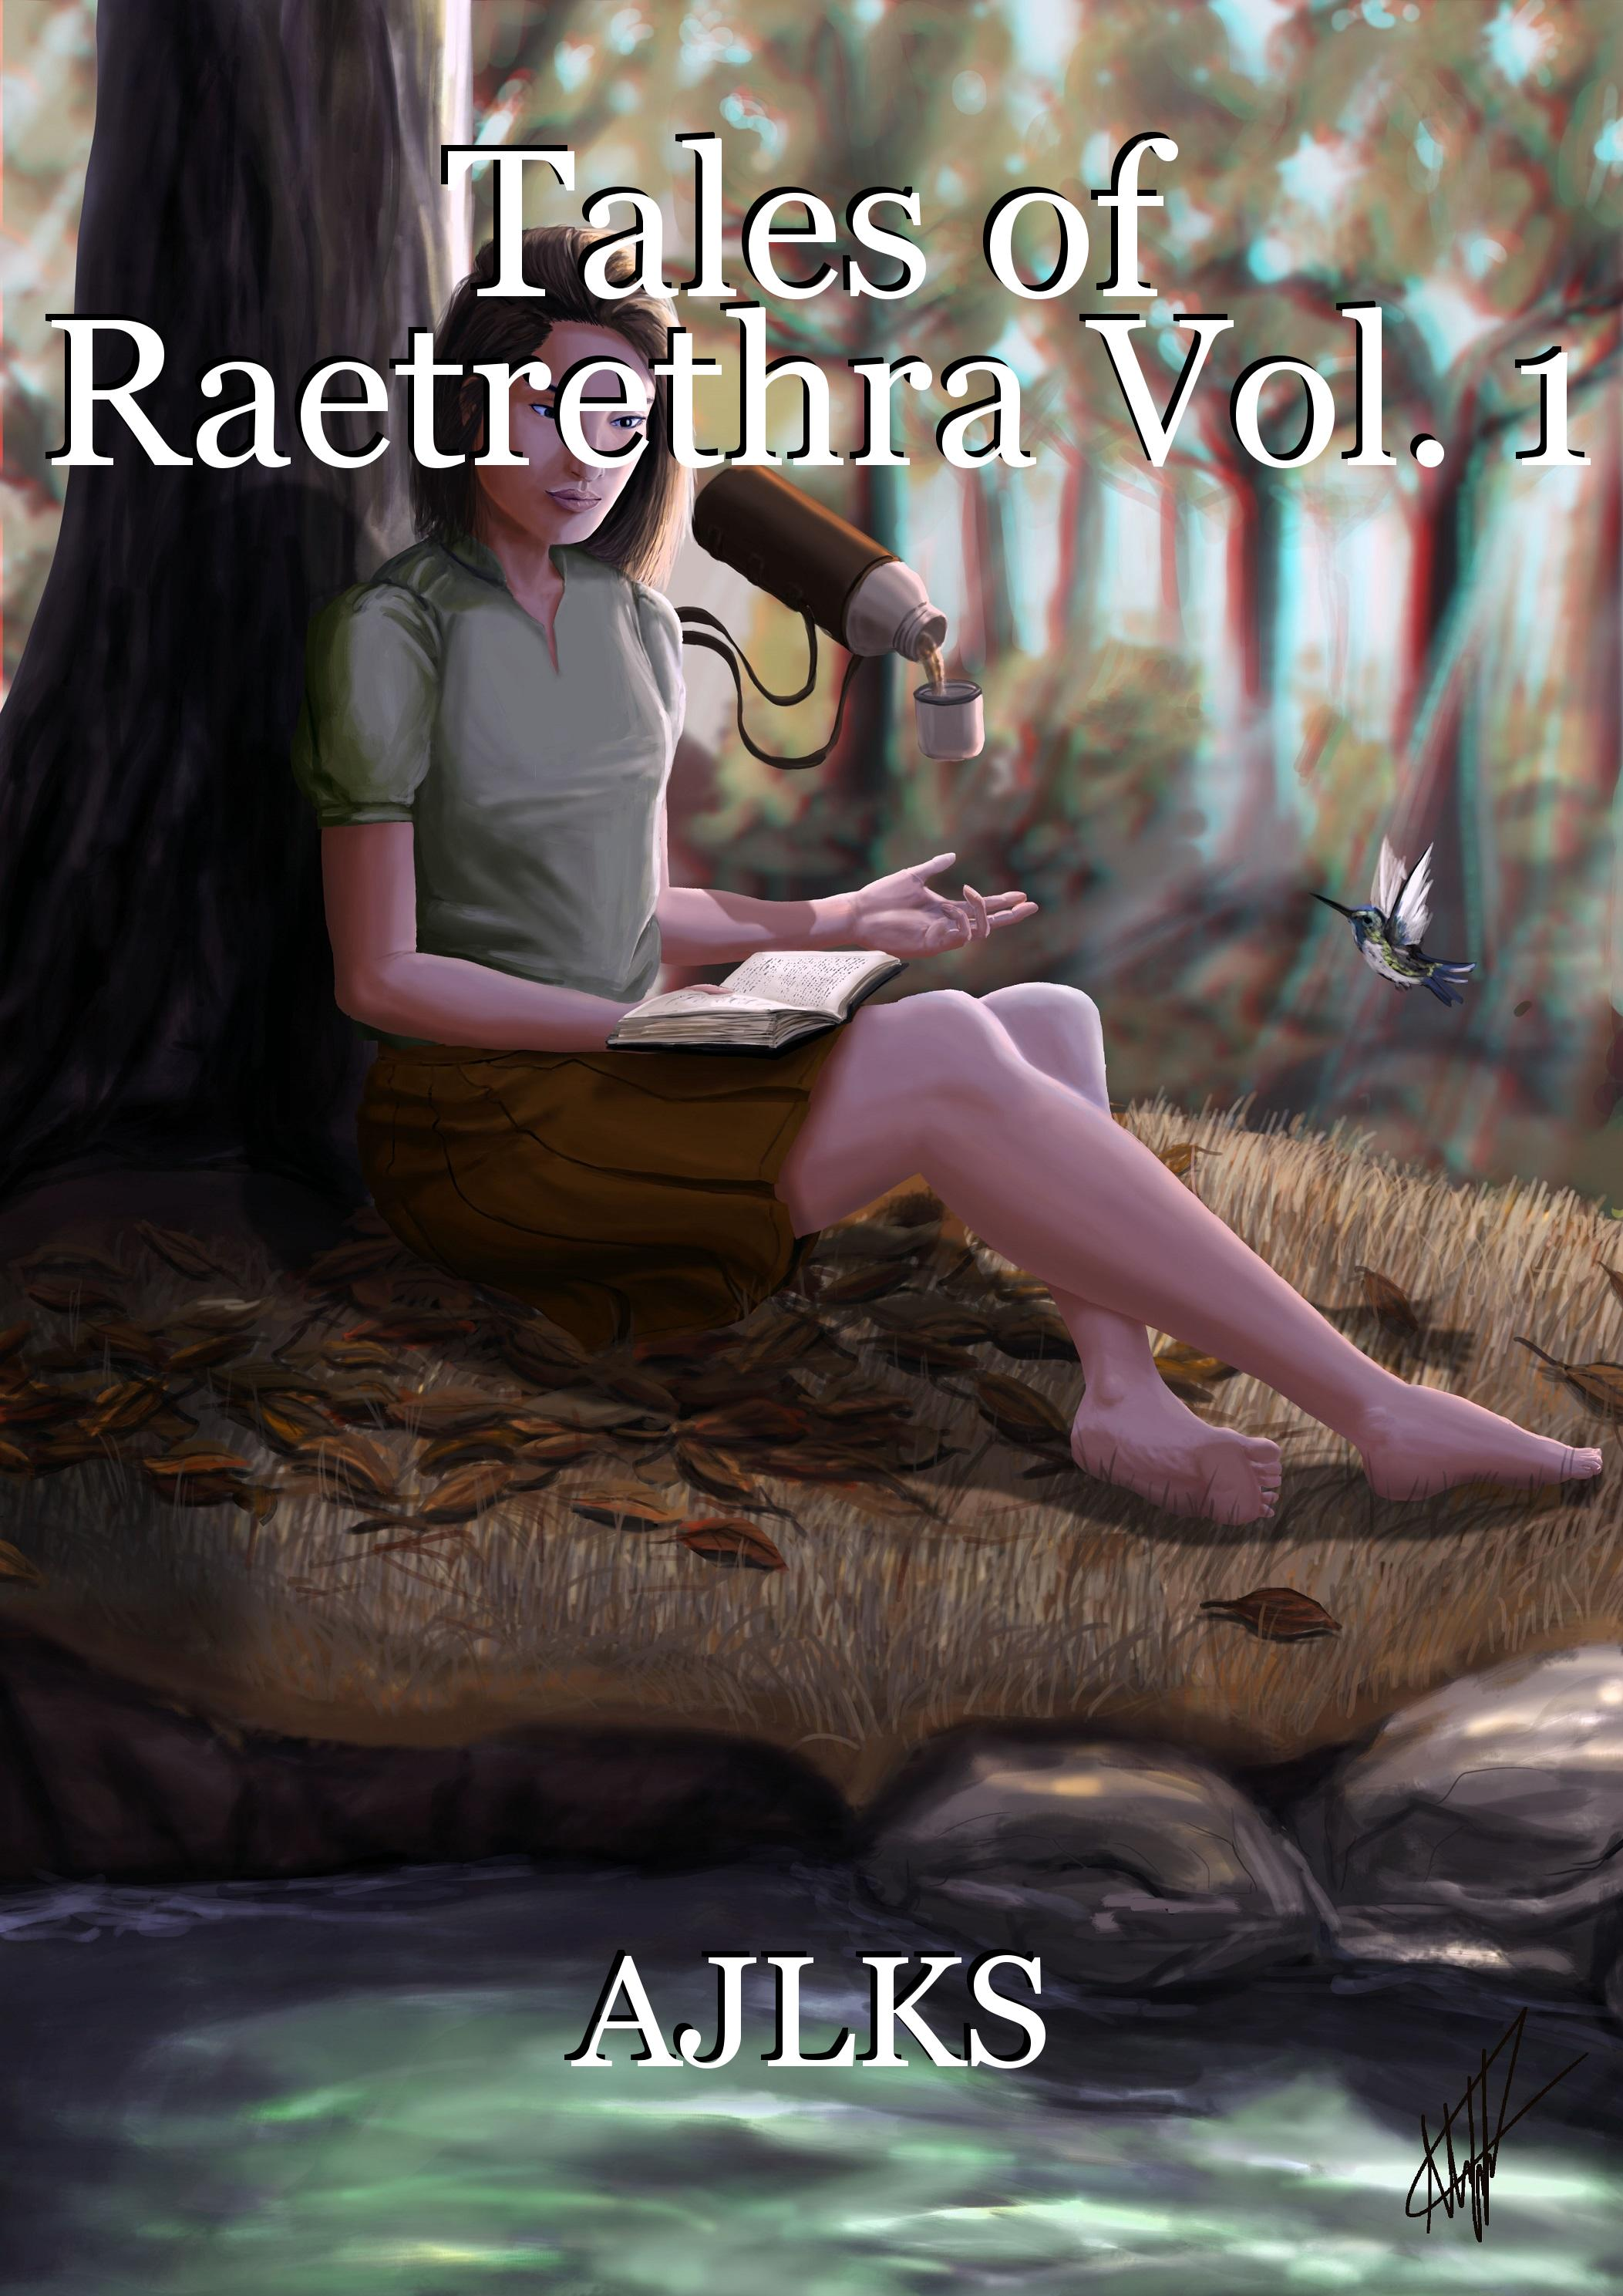 Tales of Raetrethra Vol. 1